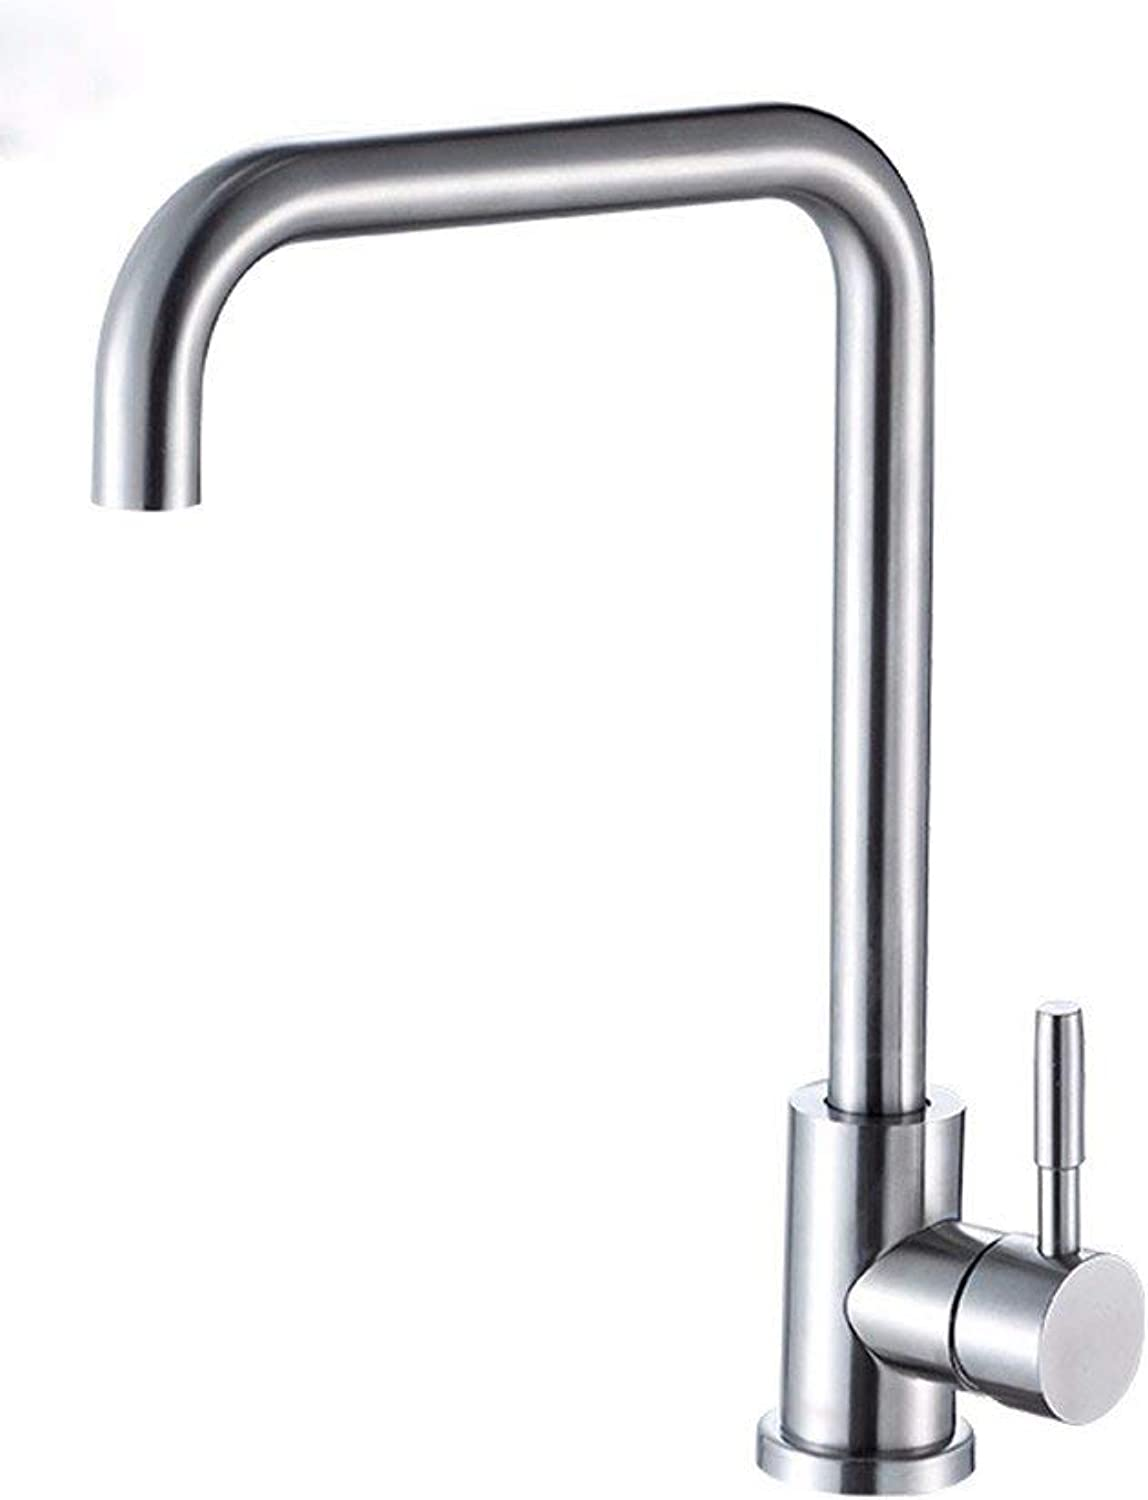 Oudan Stainless Steel hot and cold click cold kitchen washbasin click the handle Single Hole bathroom sink and faucet